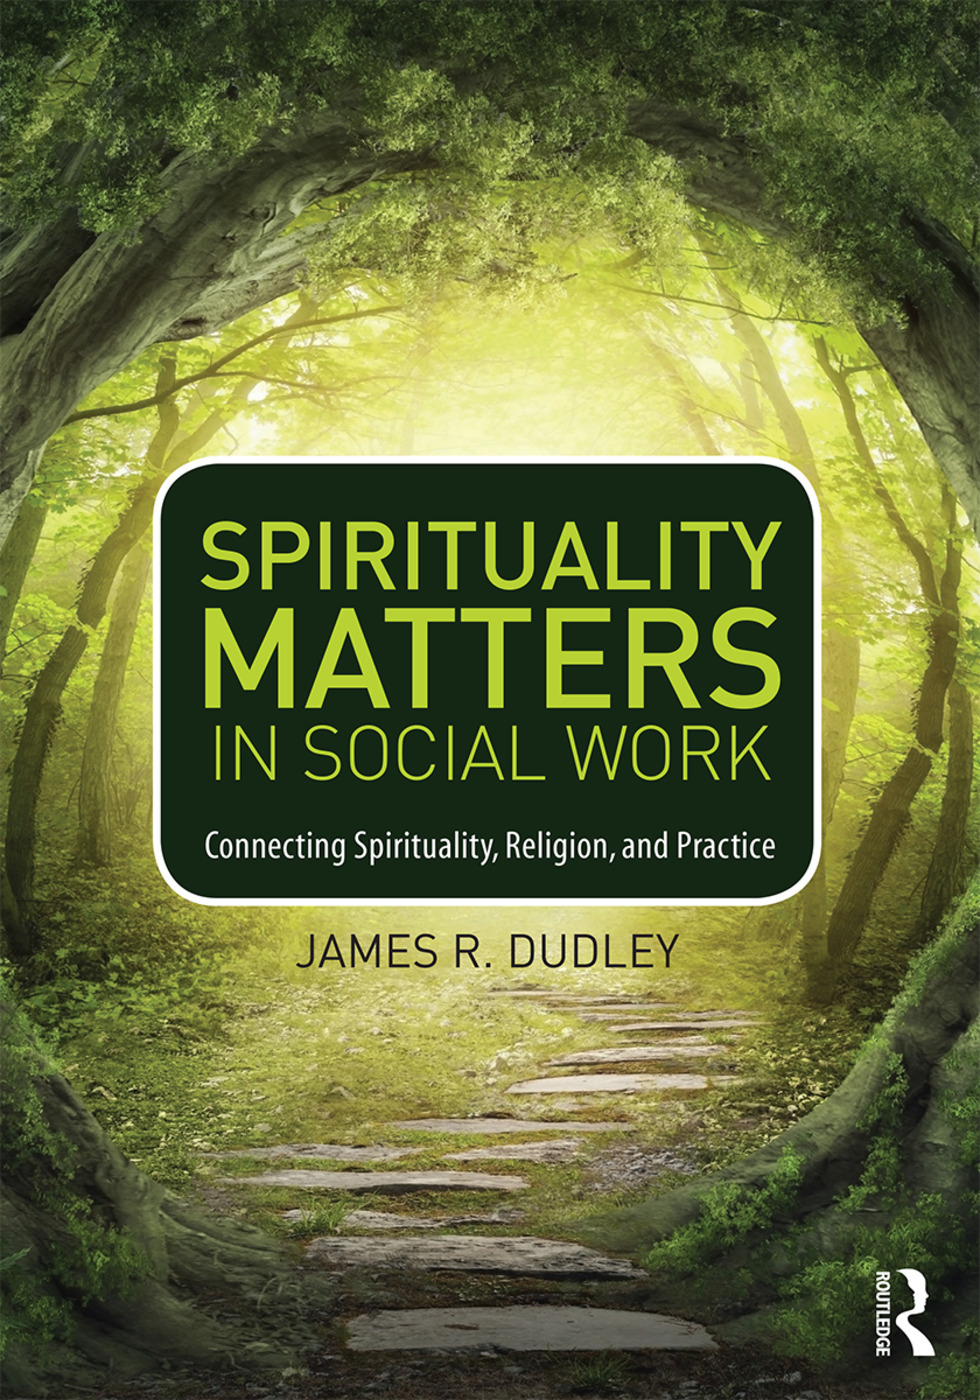 Spirituality Matters In Social Work: Connecting Spirituality, Religion